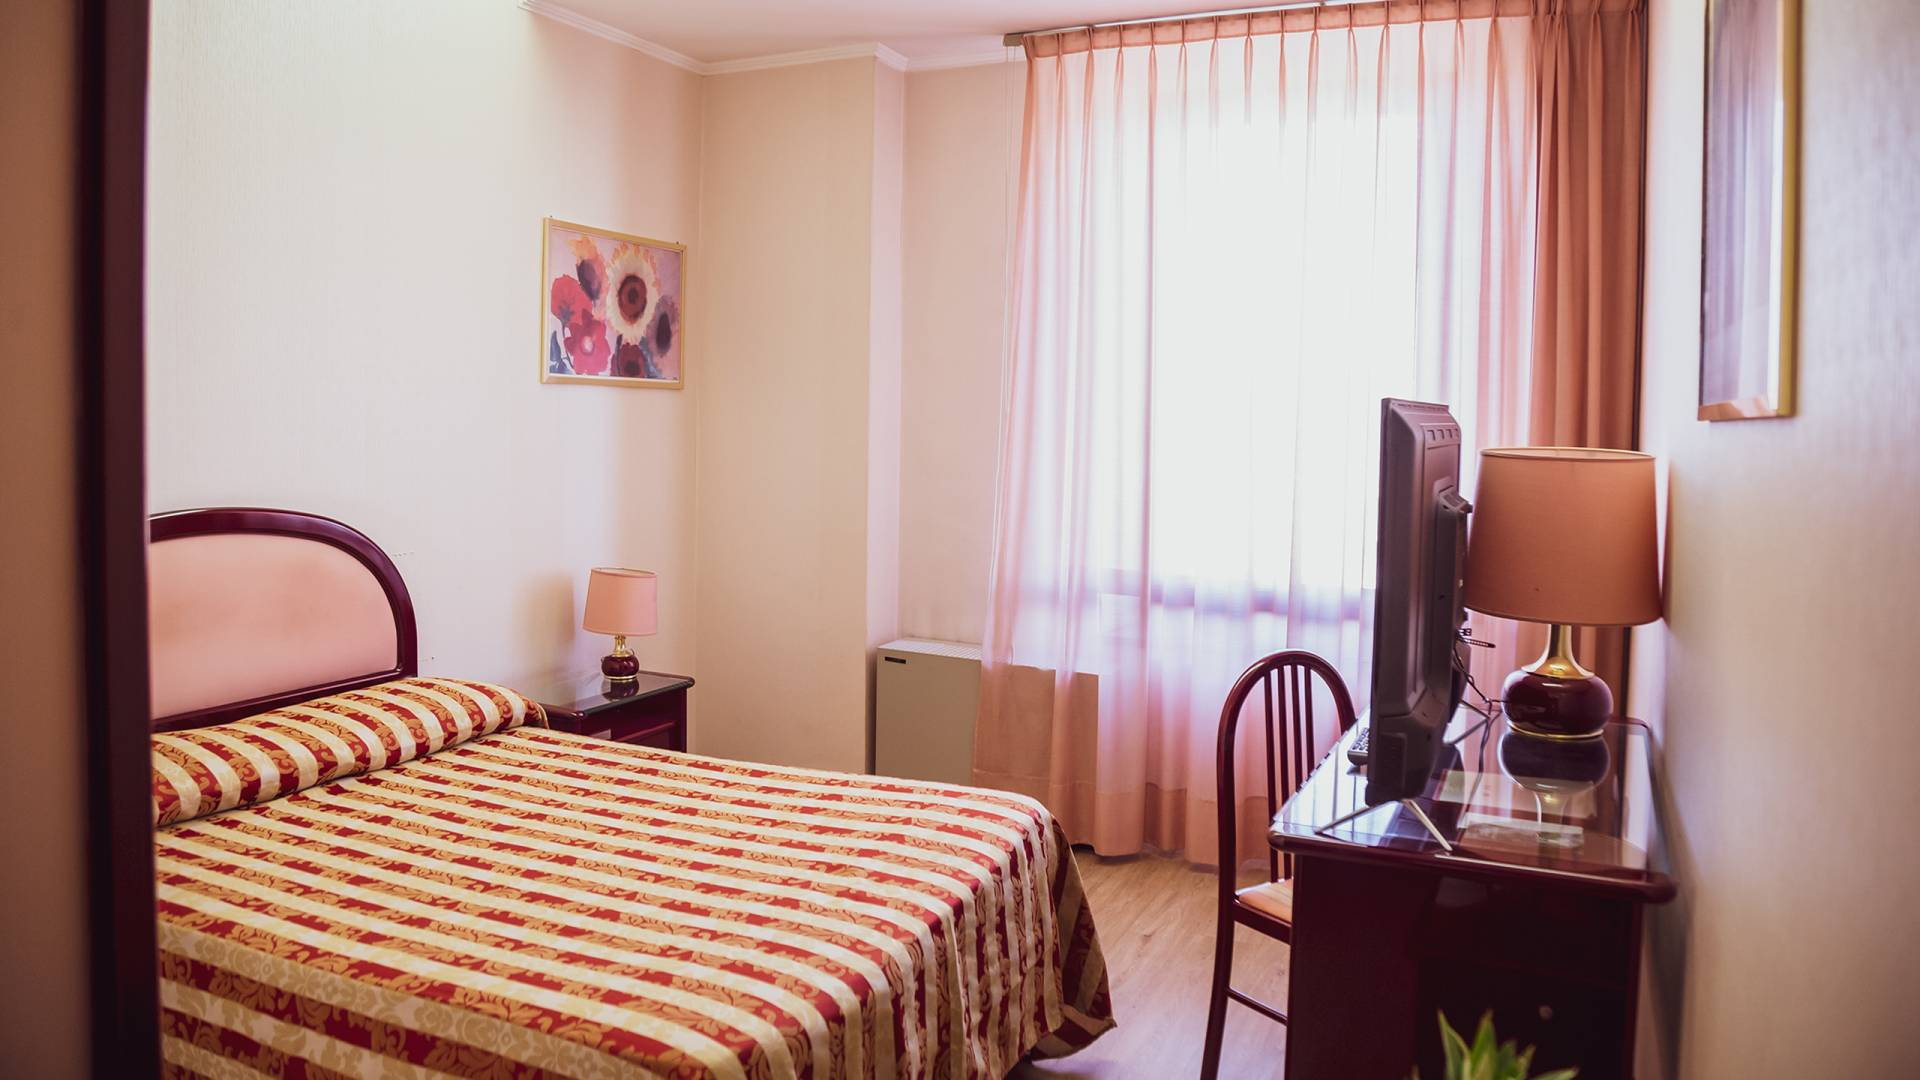 Balletti-palace-hotel-viterbo-double-room